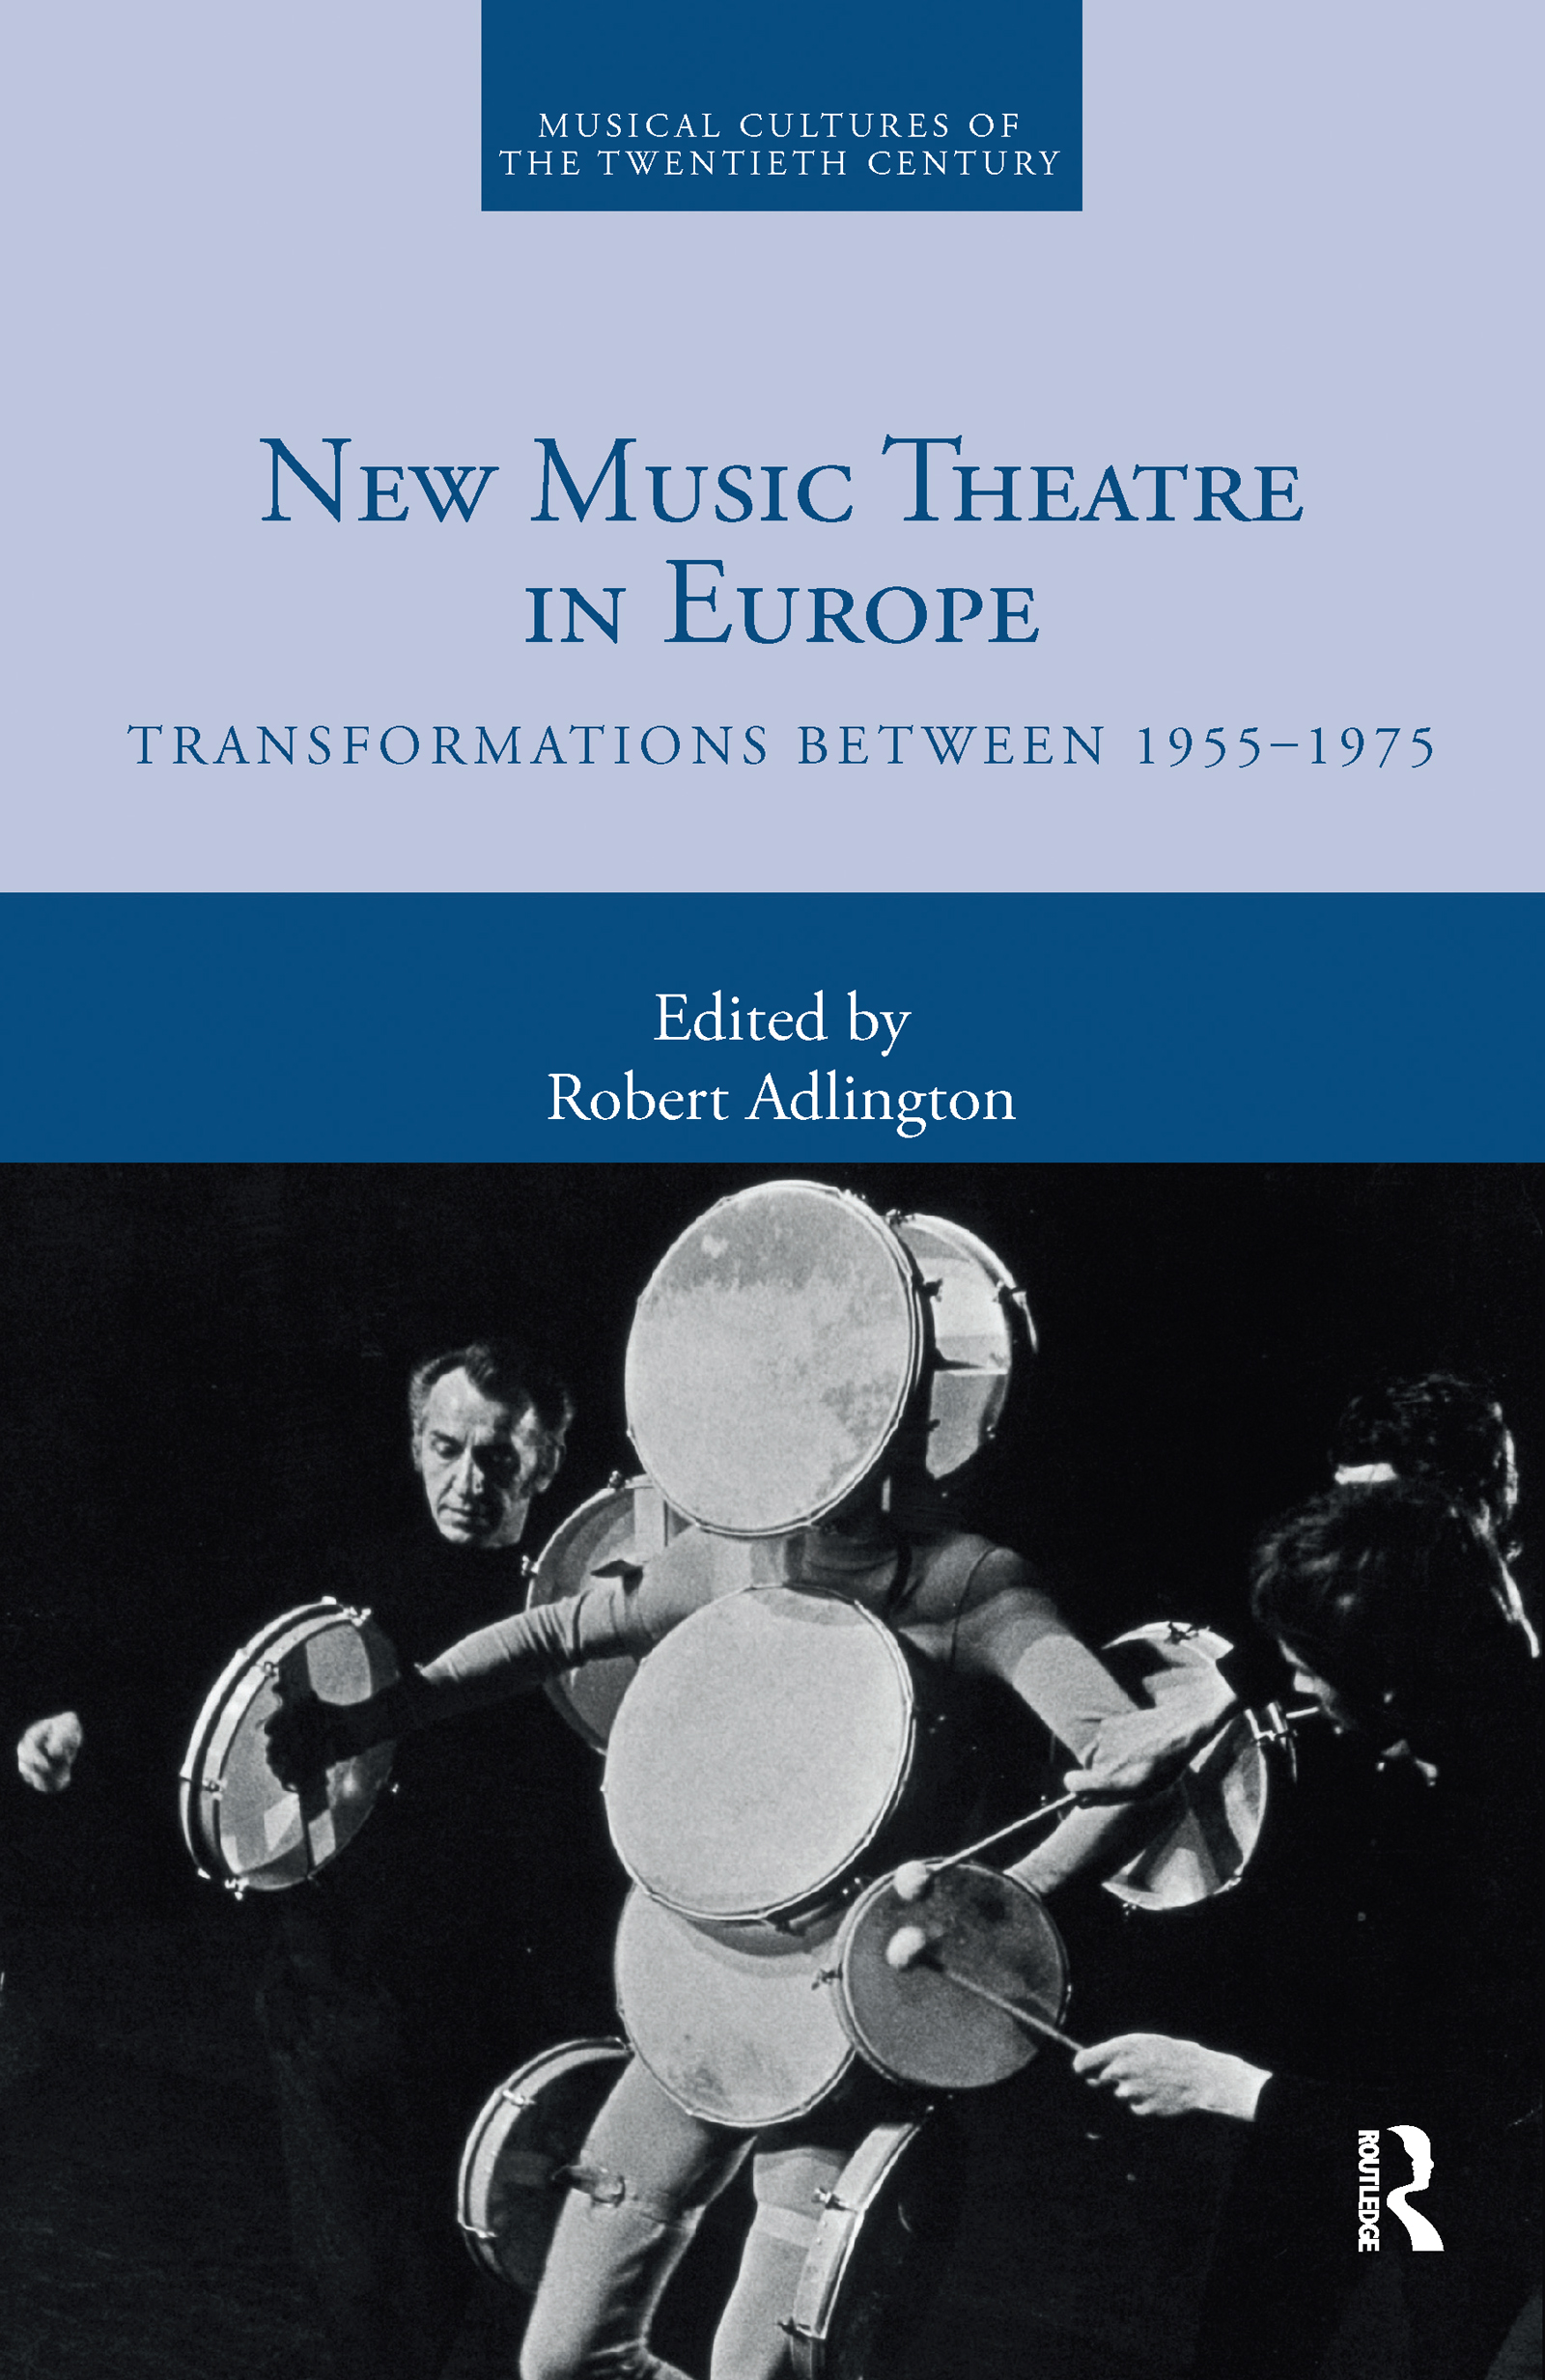 New Music Theatre in Europe